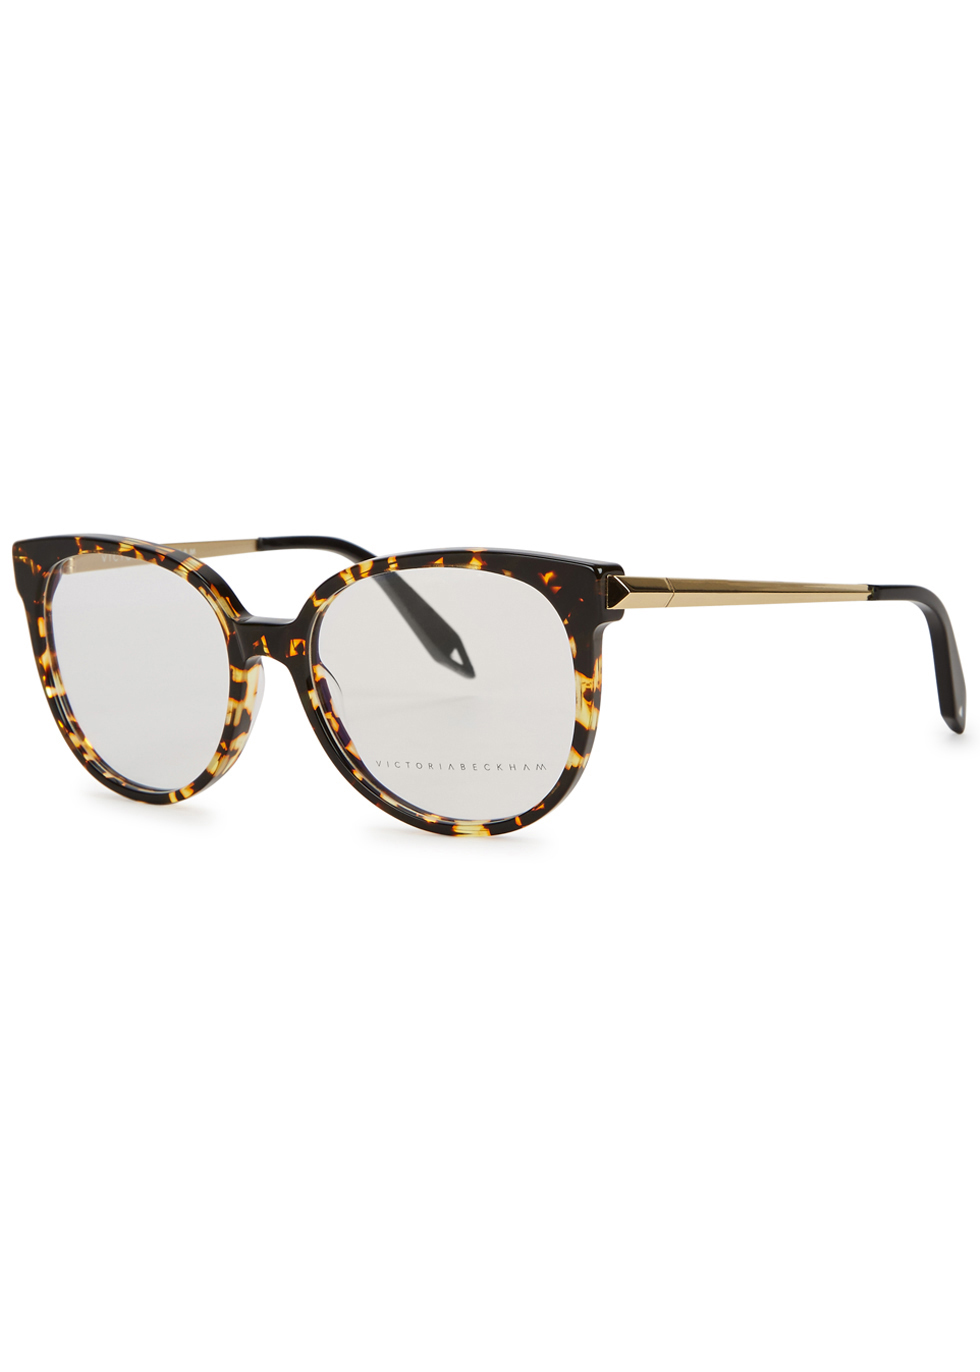 Fine Oval Kitten Tortoiseshell Optical Glasses - predominant colour: camel; occasions: casual, holiday; style: round; size: standard; material: plastic/rubber; pattern: tortoiseshell; finish: plain; wardrobe: basic; season: a/w 2016